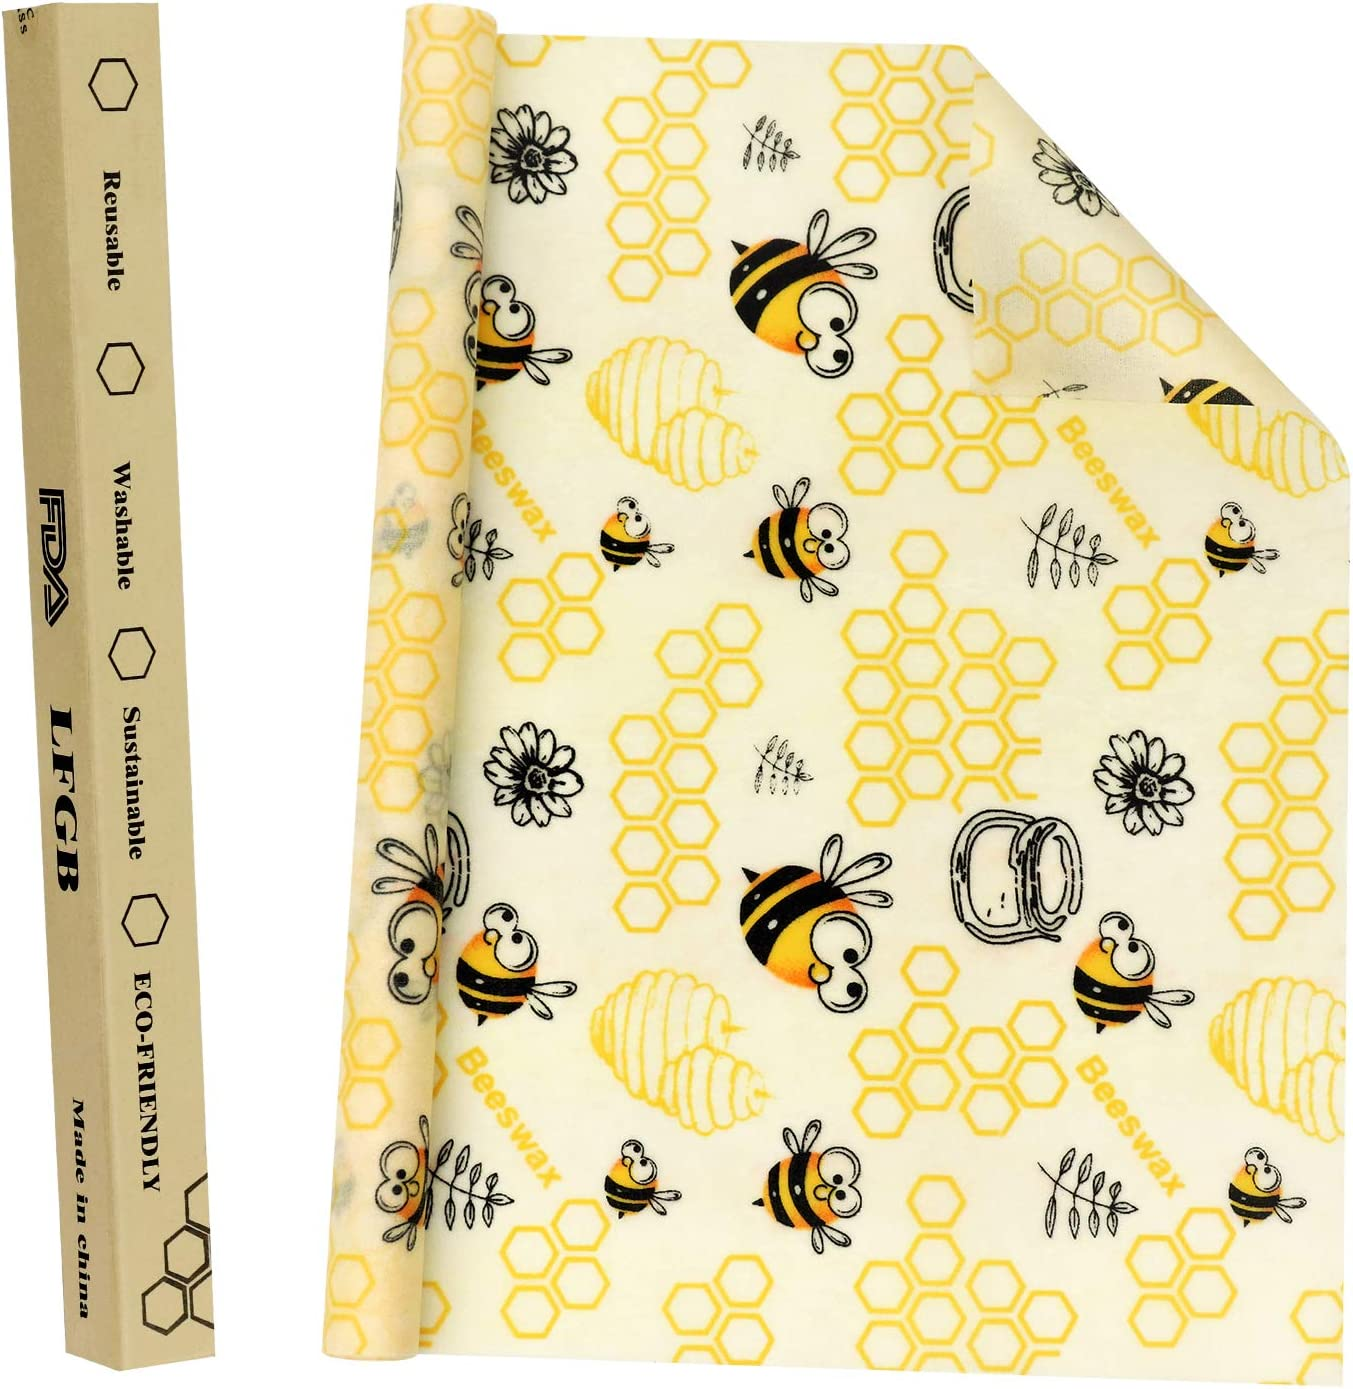 """Beeswax Food Wrap, Reusable Beeswax Wraps Roll 1 Metre (13""""×39"""") Organic Food Storage Nature Beeswax Wrap for Sandwich,Bread,Cheese,Fruit Eco Friendly by AK KYC"""